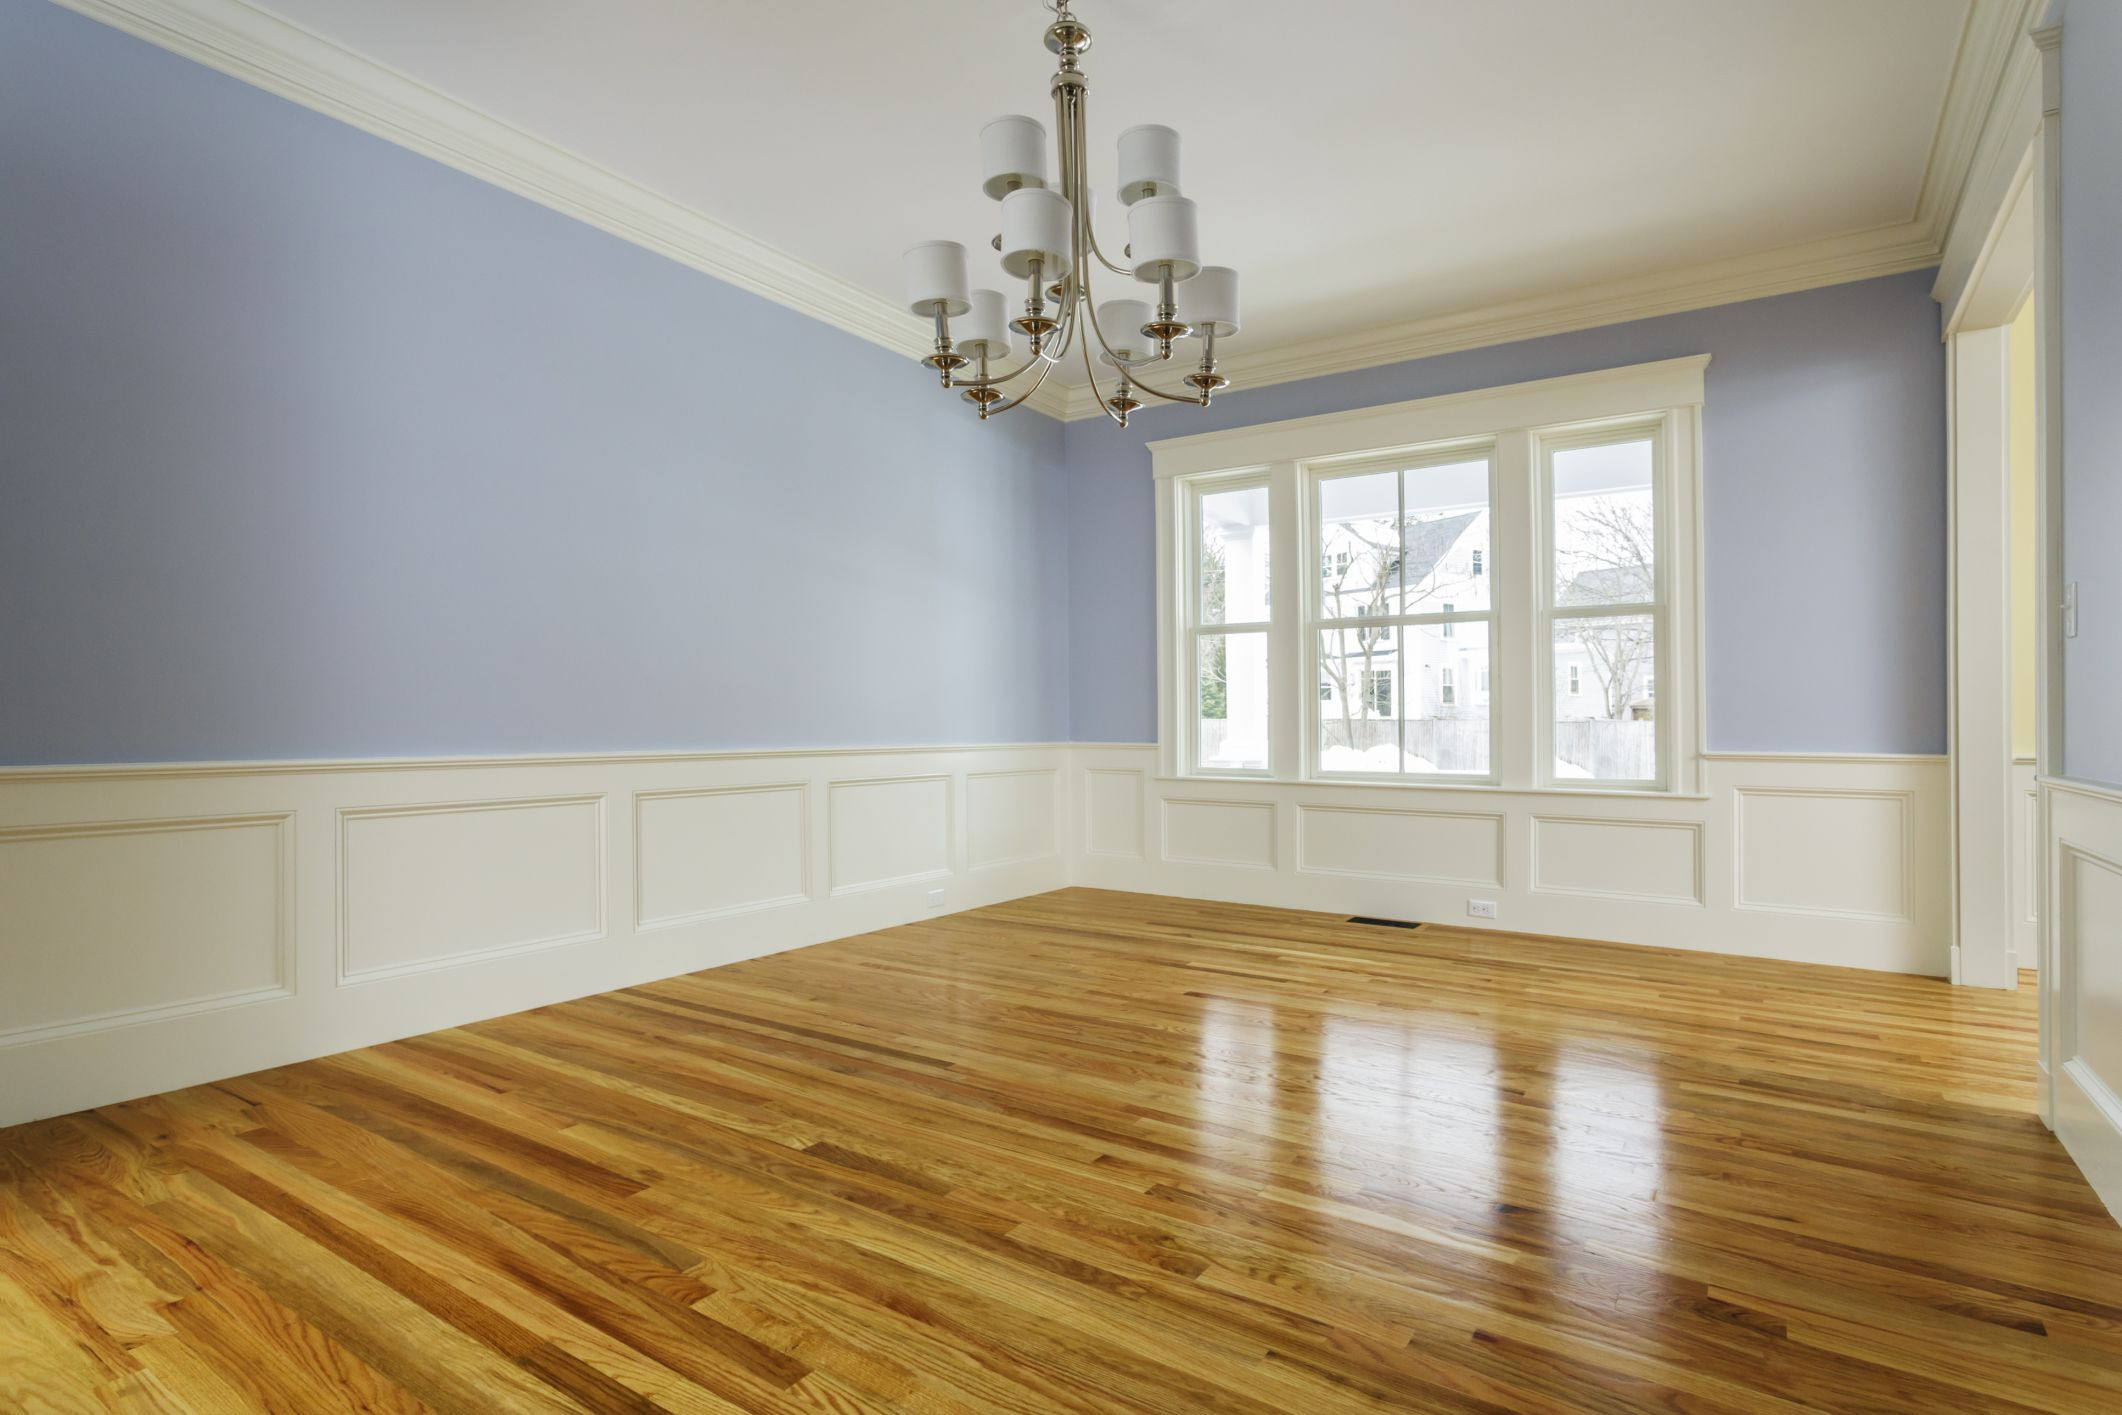 refinishing hardwood floors after carpet of the cost to refinish hardwood floors for 168686572 highres 56a2fd773df78cf7727b6cb3